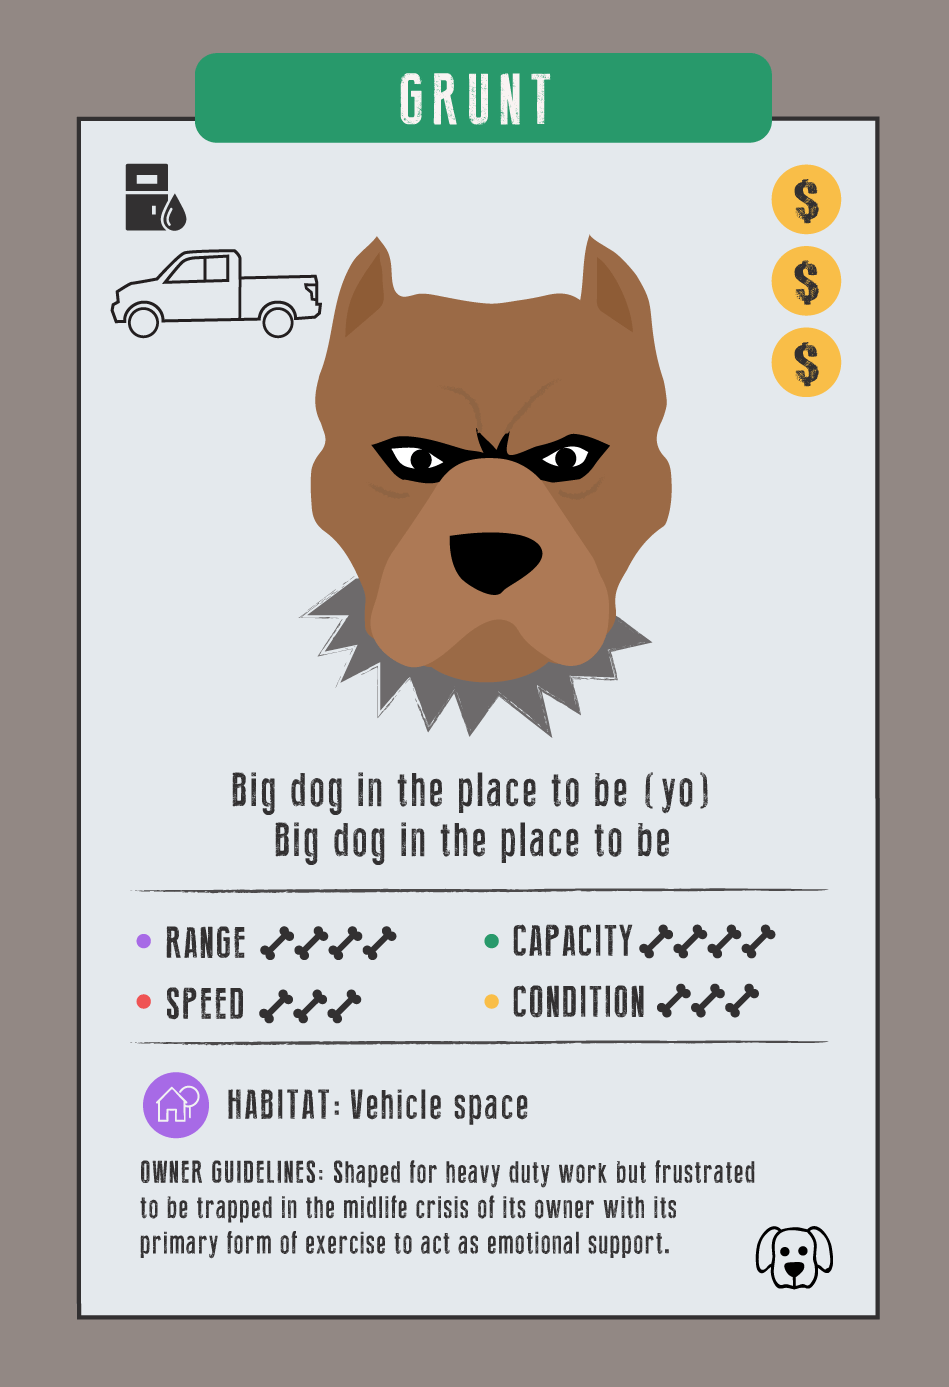 """Grunt DOG card, """"Big dog in the place to be (yo) Big dog in the place to be""""; he represents a pickup truck; """"Owner guidelines: Shaped for heavy duty work but frustrated to be trapped in the midlife crisis of its owner with its primary form of exercise to act as an emotional support."""""""